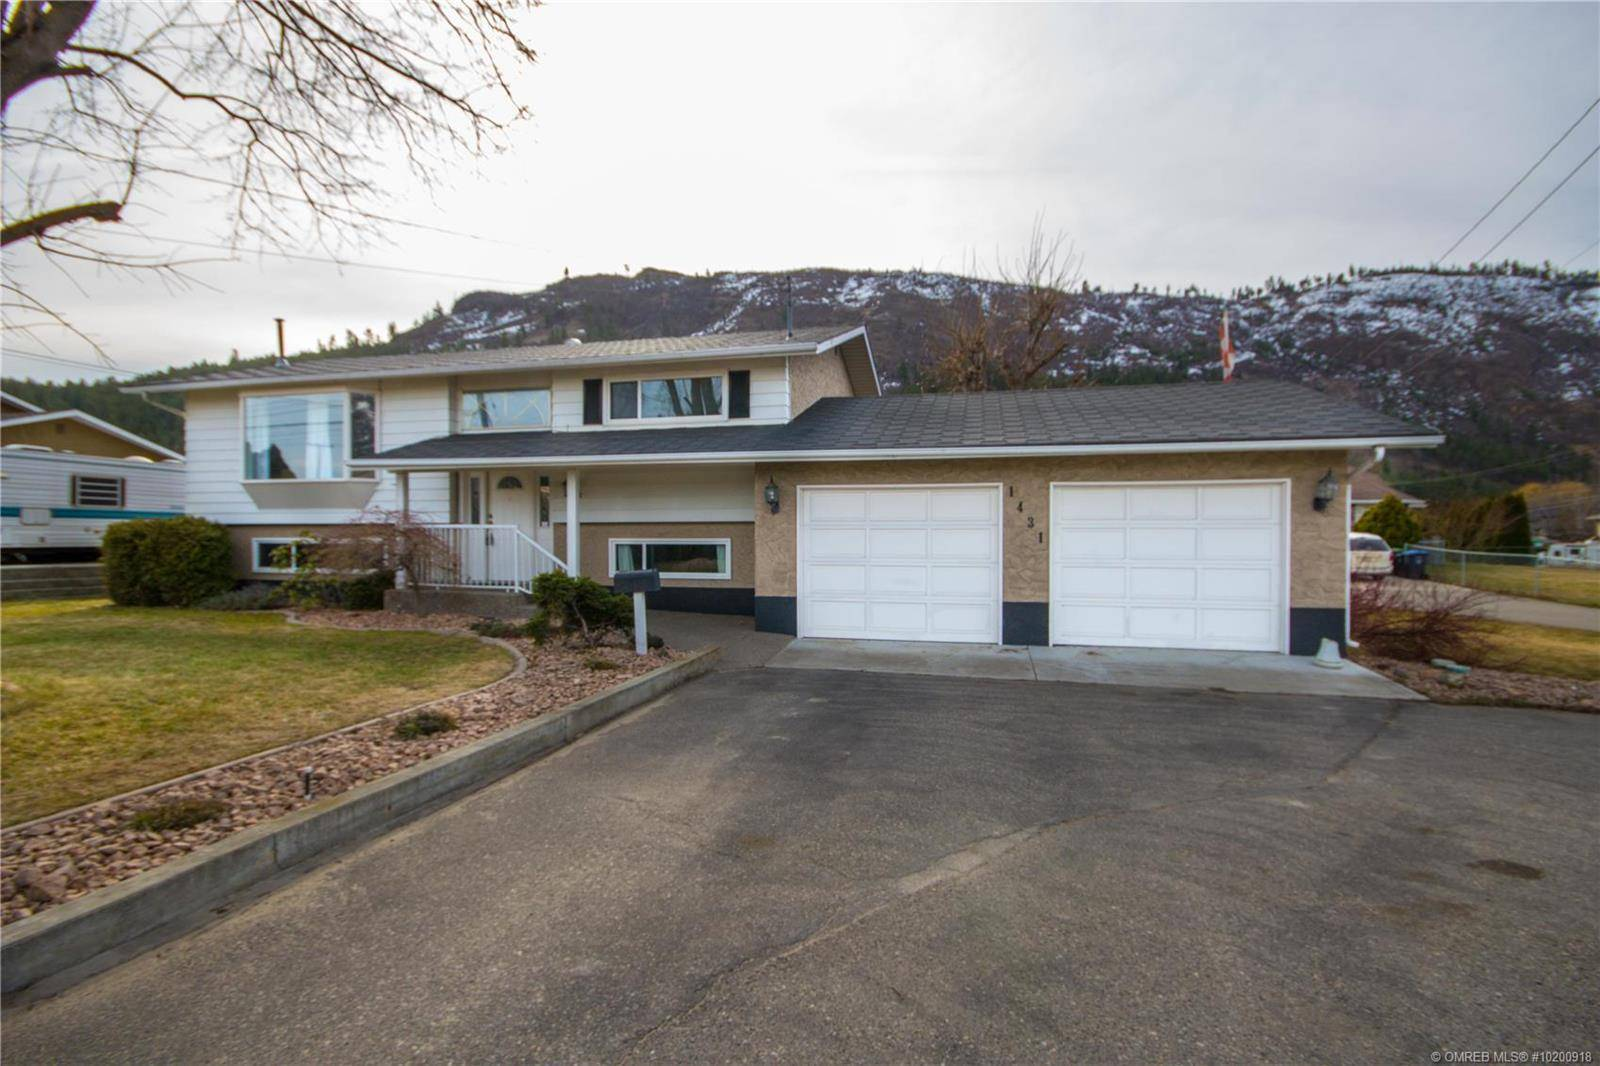 House for sale at 1431 Hudson Rd West Kelowna British Columbia - MLS: 10200918